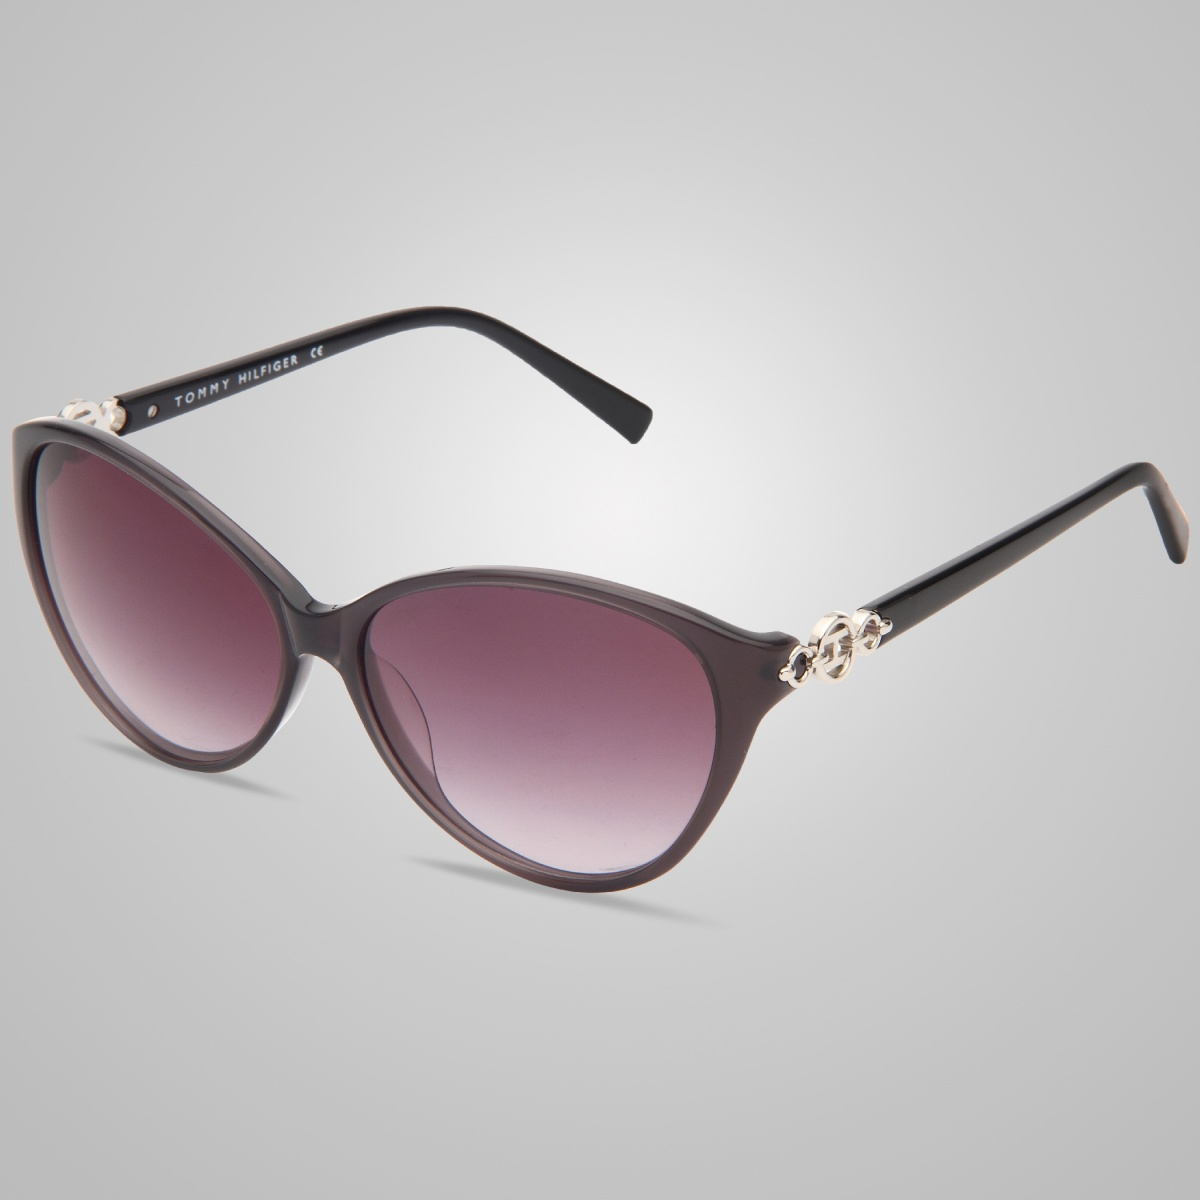 TOMMY HILFIGER Cat Eye Sunglasses Women - travel shades